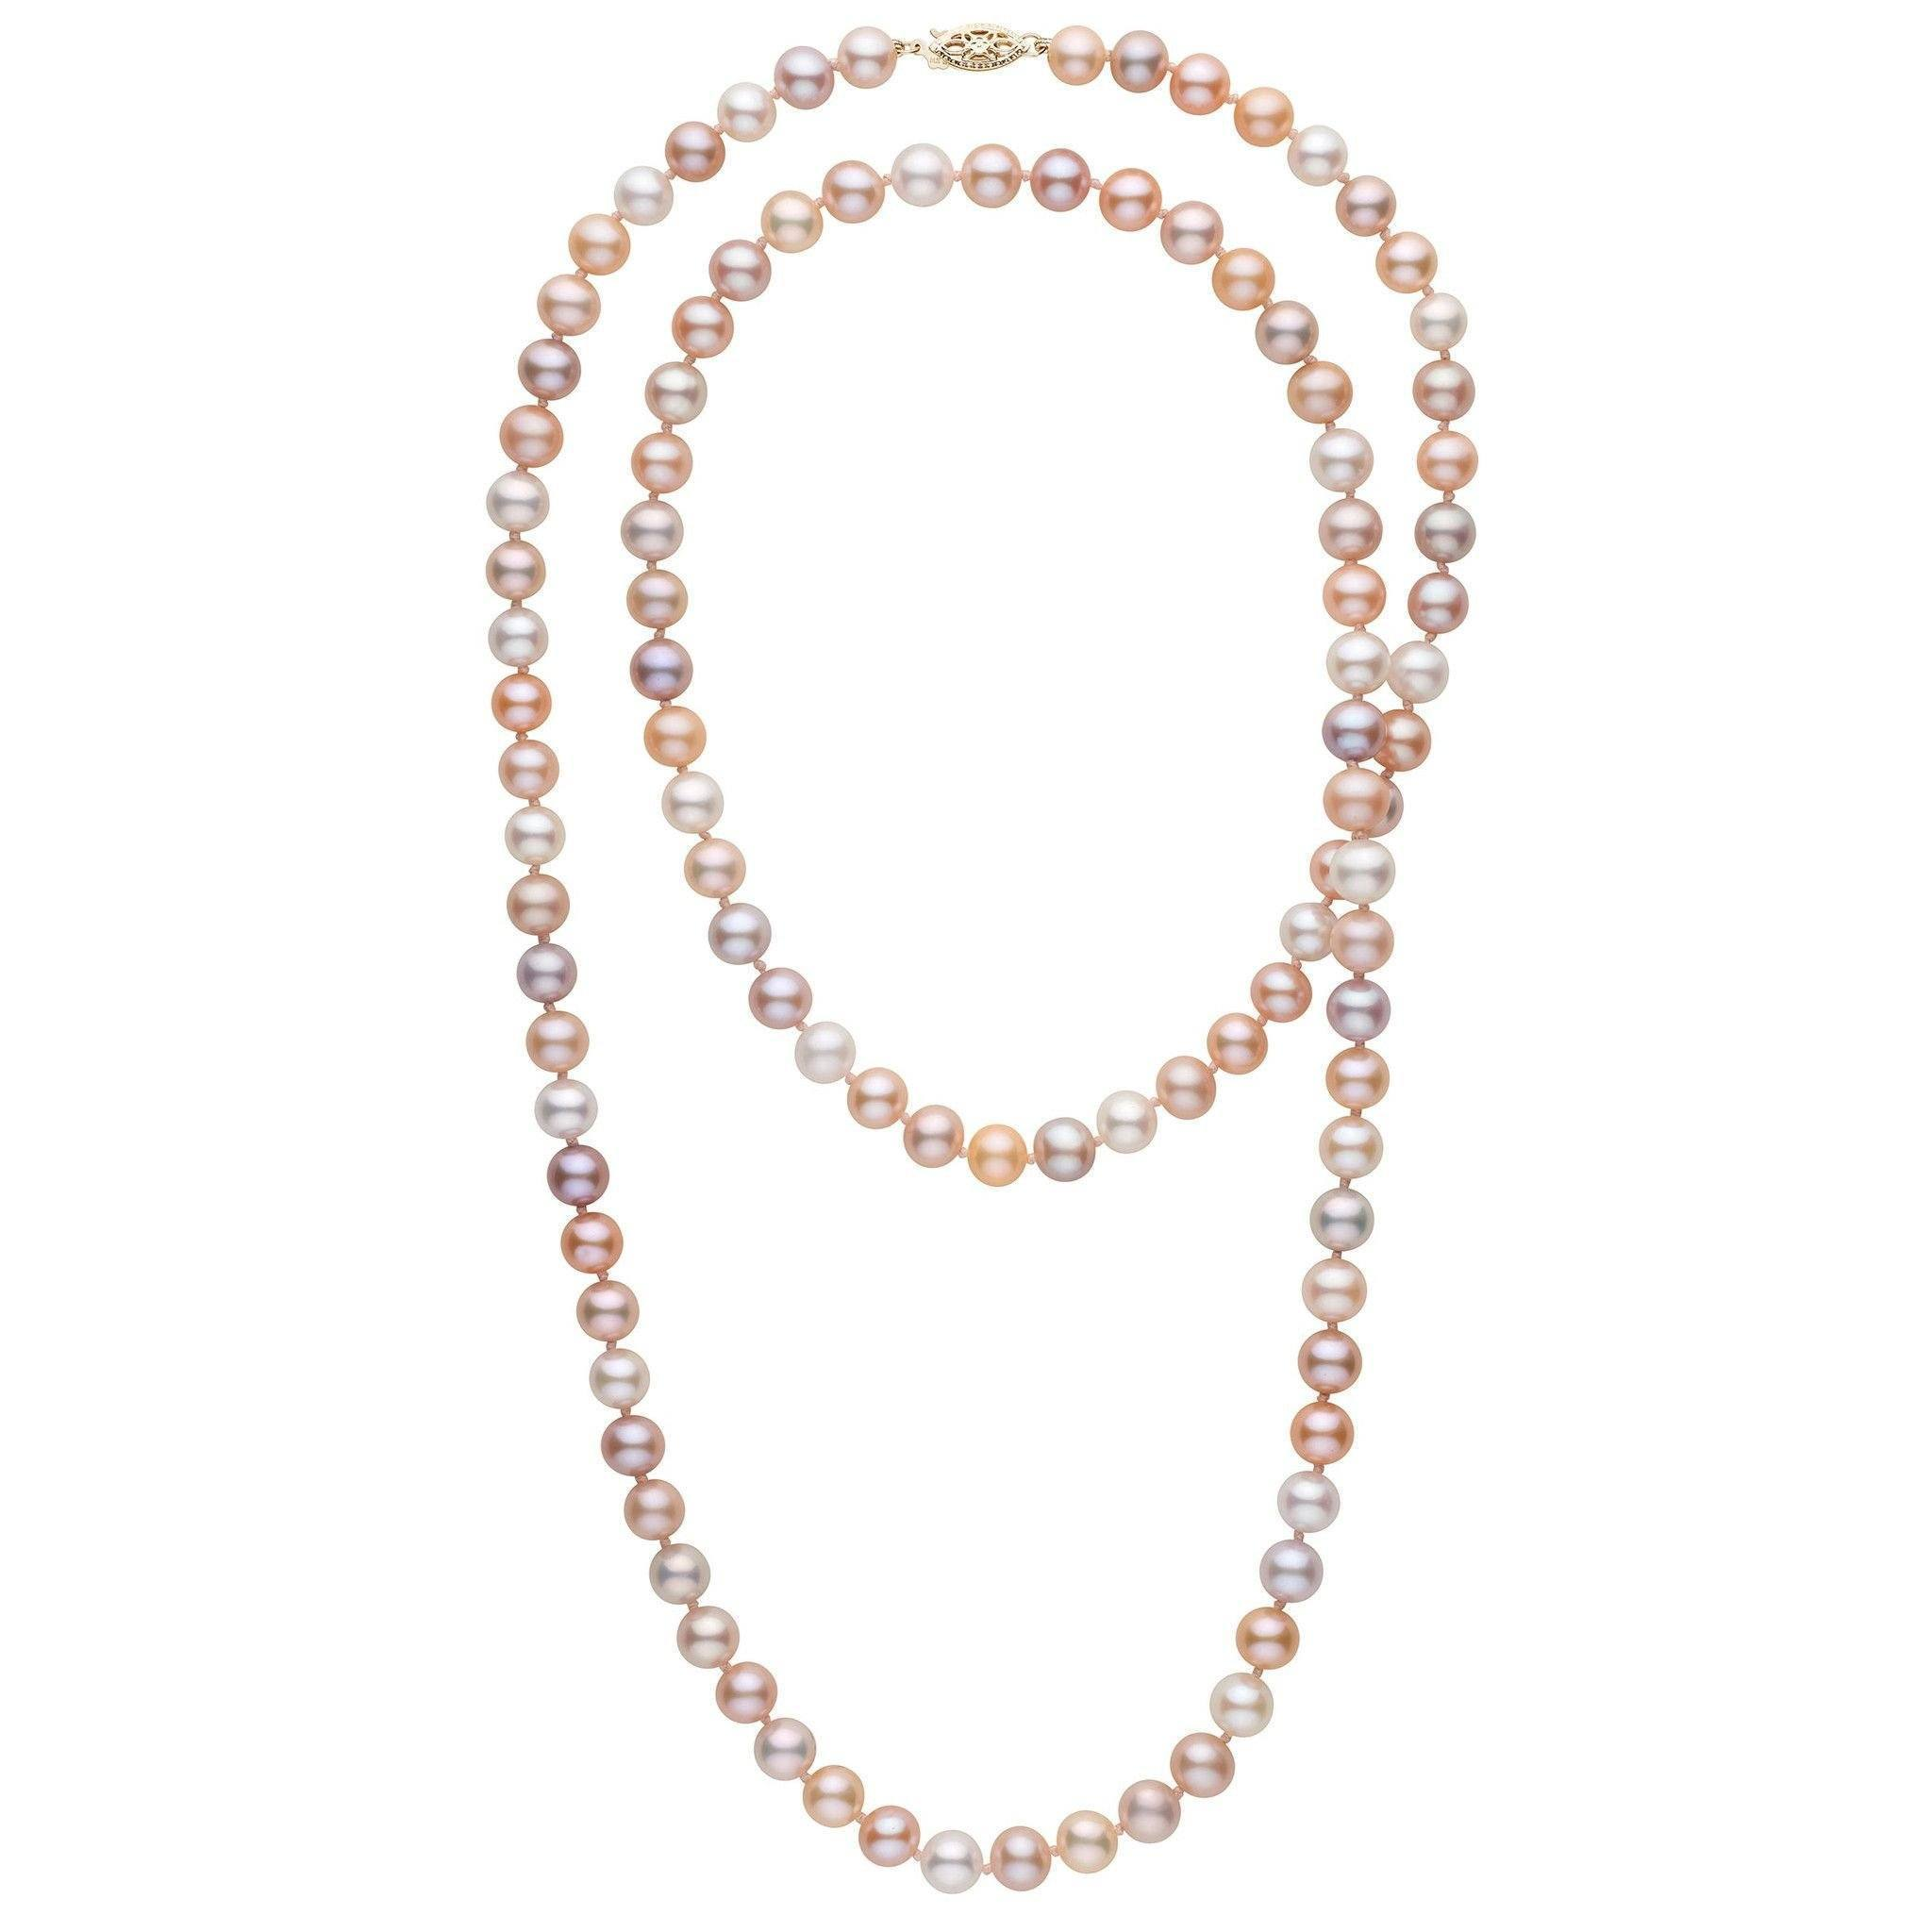 35-inch 7.5-8.0 mm AAA Multicolor Freshwater Pearl Necklace